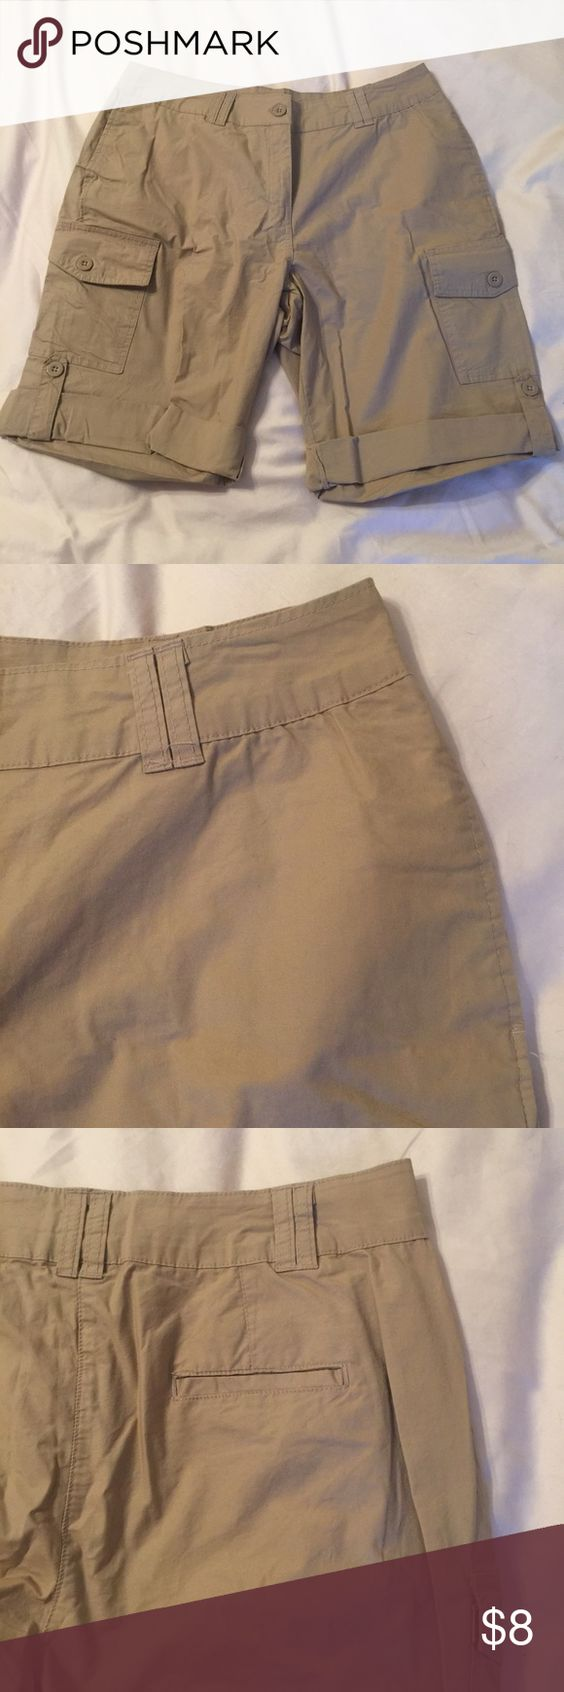 "Convertible khaki cargo shorts Convertible Khaki Cargo Shorts | size 14W | brand Ellos from Woman Within | never worn | 36"" waist 